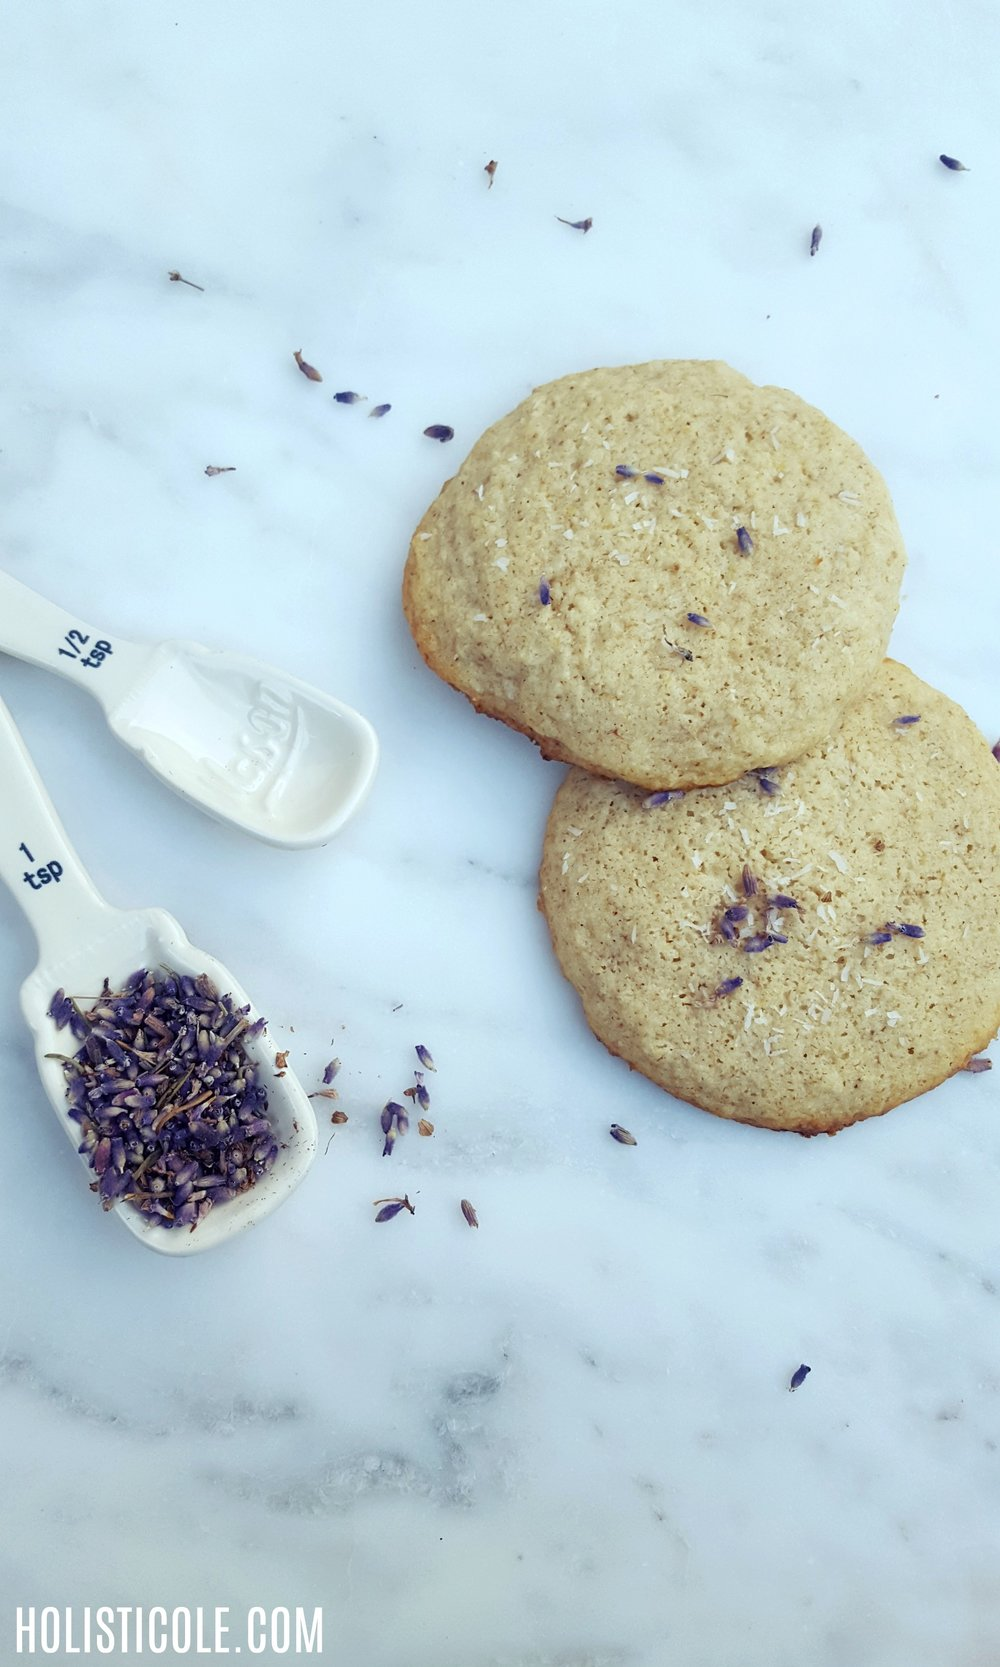 Holisticole - Anti-Anxiety Lavender Cookies